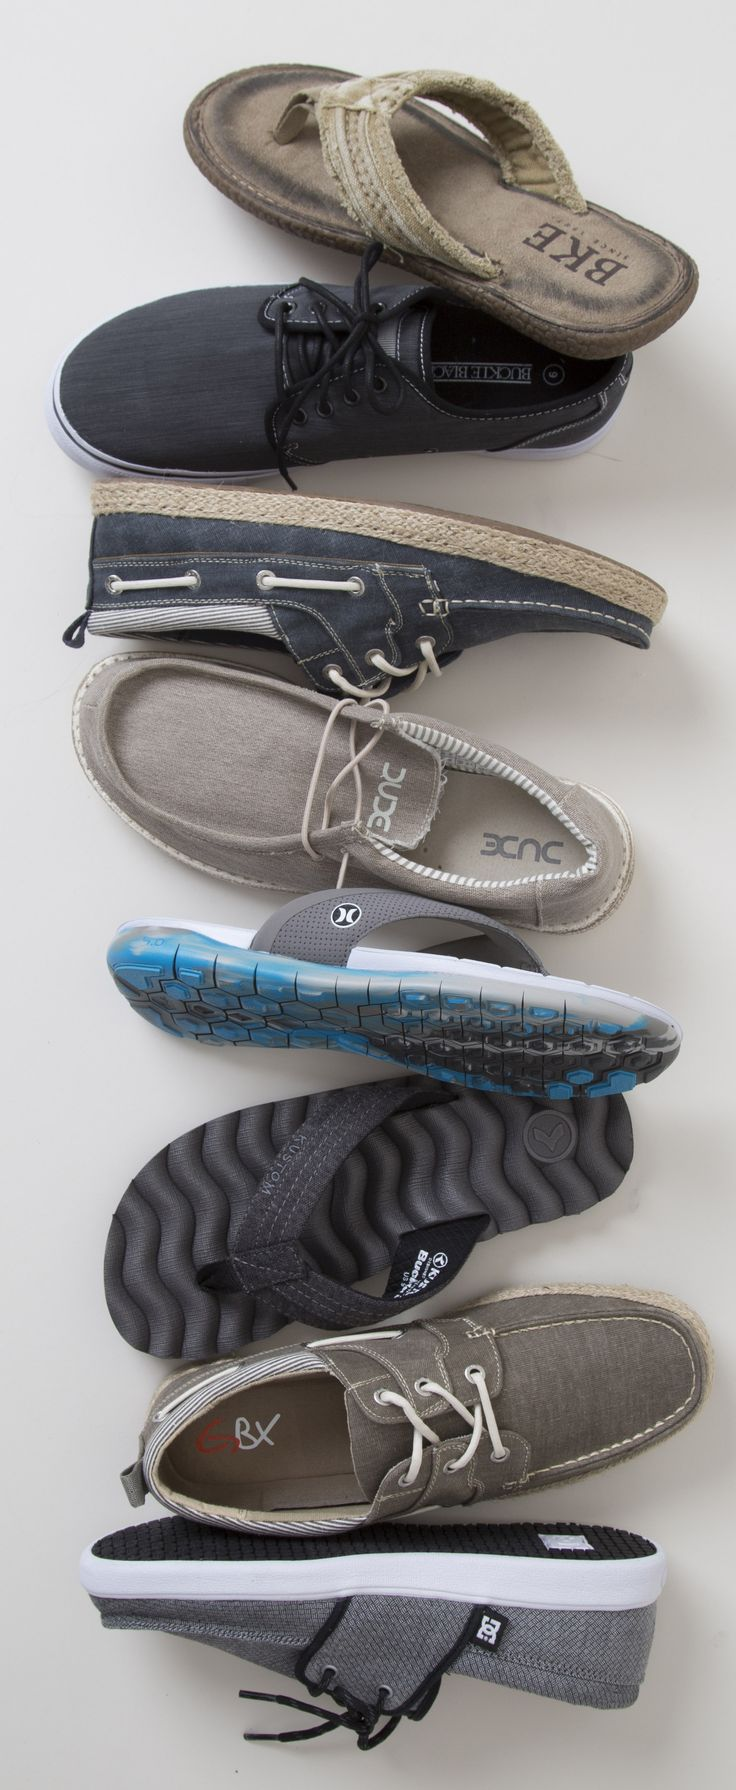 Spring Shoes for Men | Buckle